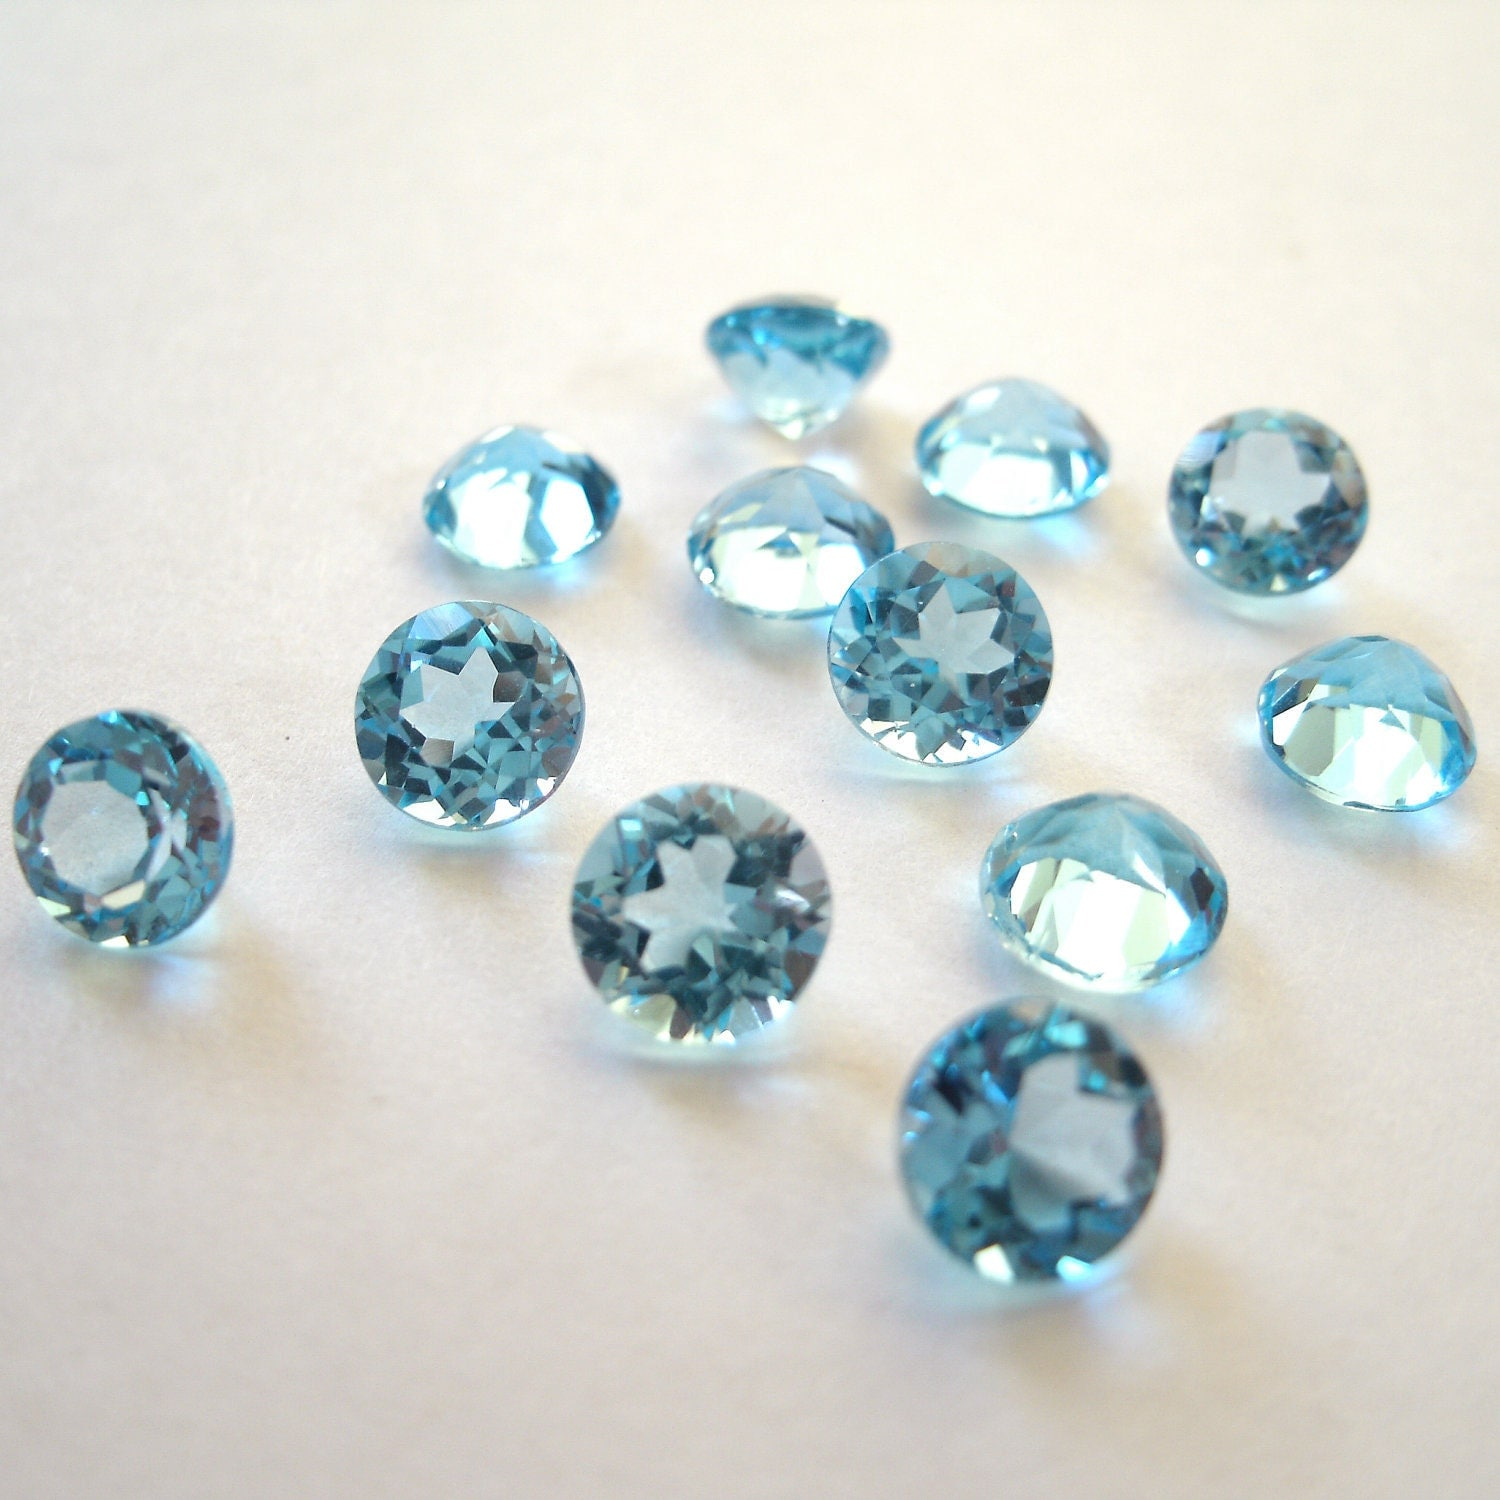 sale faceted gemstones swiss blue topaz brilliant cut 5mm for